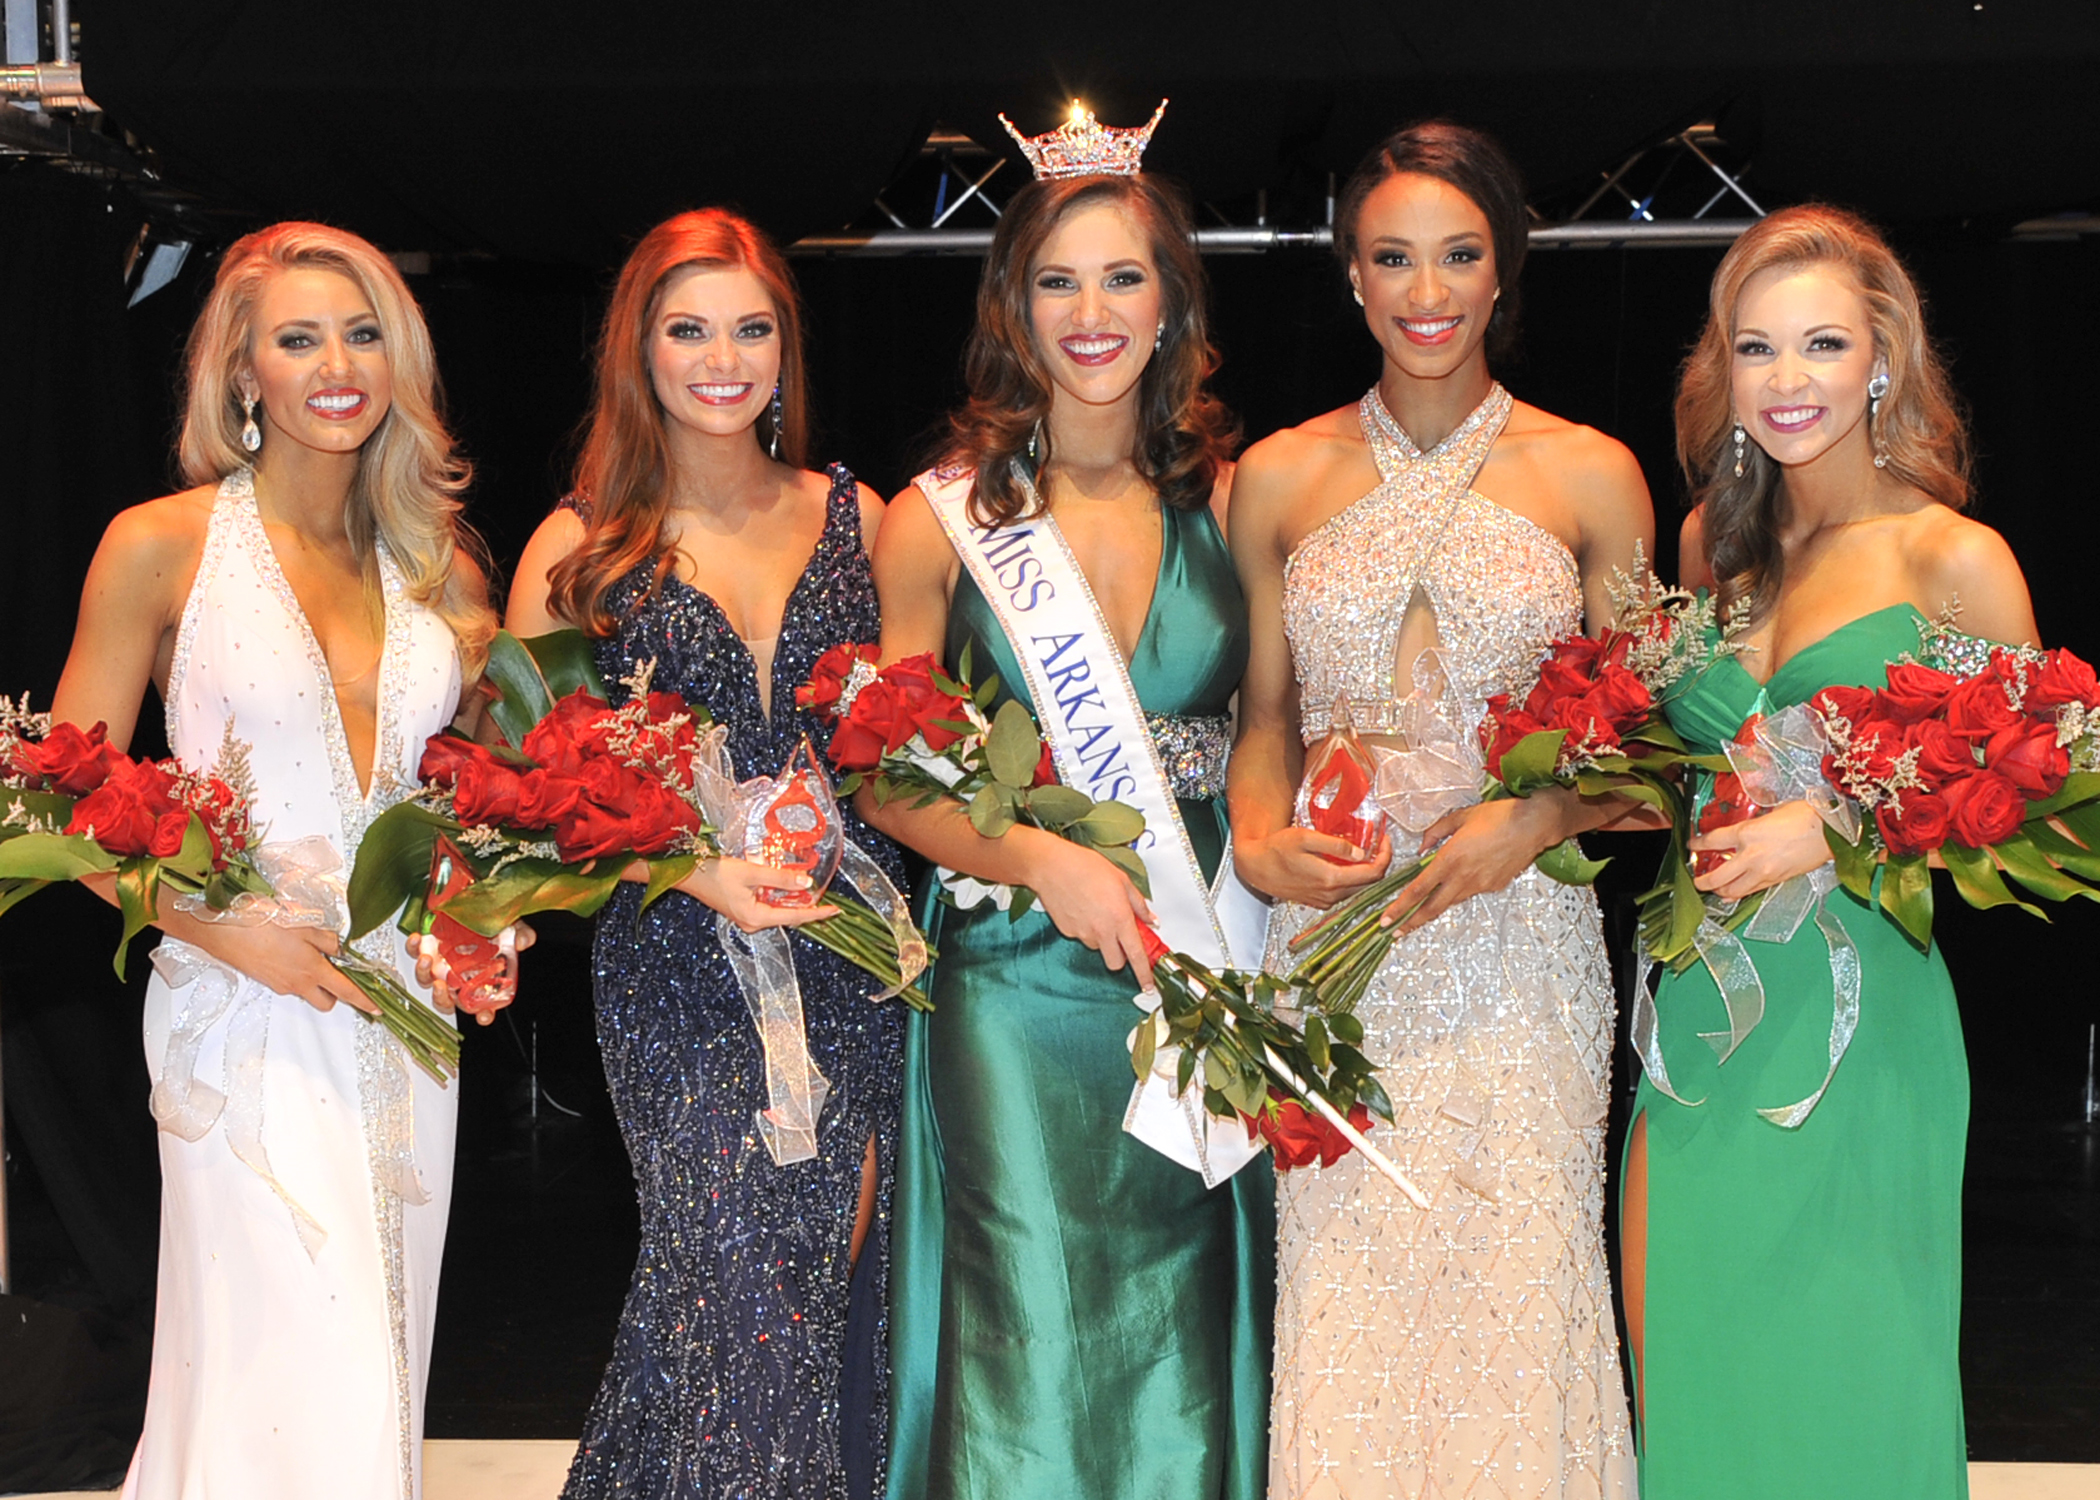 From Left to Right, third runner-up: Bailey Moses, first runner-up: Darynne Dahlem, Miss Arkansas 2017: Maggie Benton, second runner-up: Ashley Ehrhart, fourth runner-up: Claudia Raffo (Photo: Danny Barger Photography)